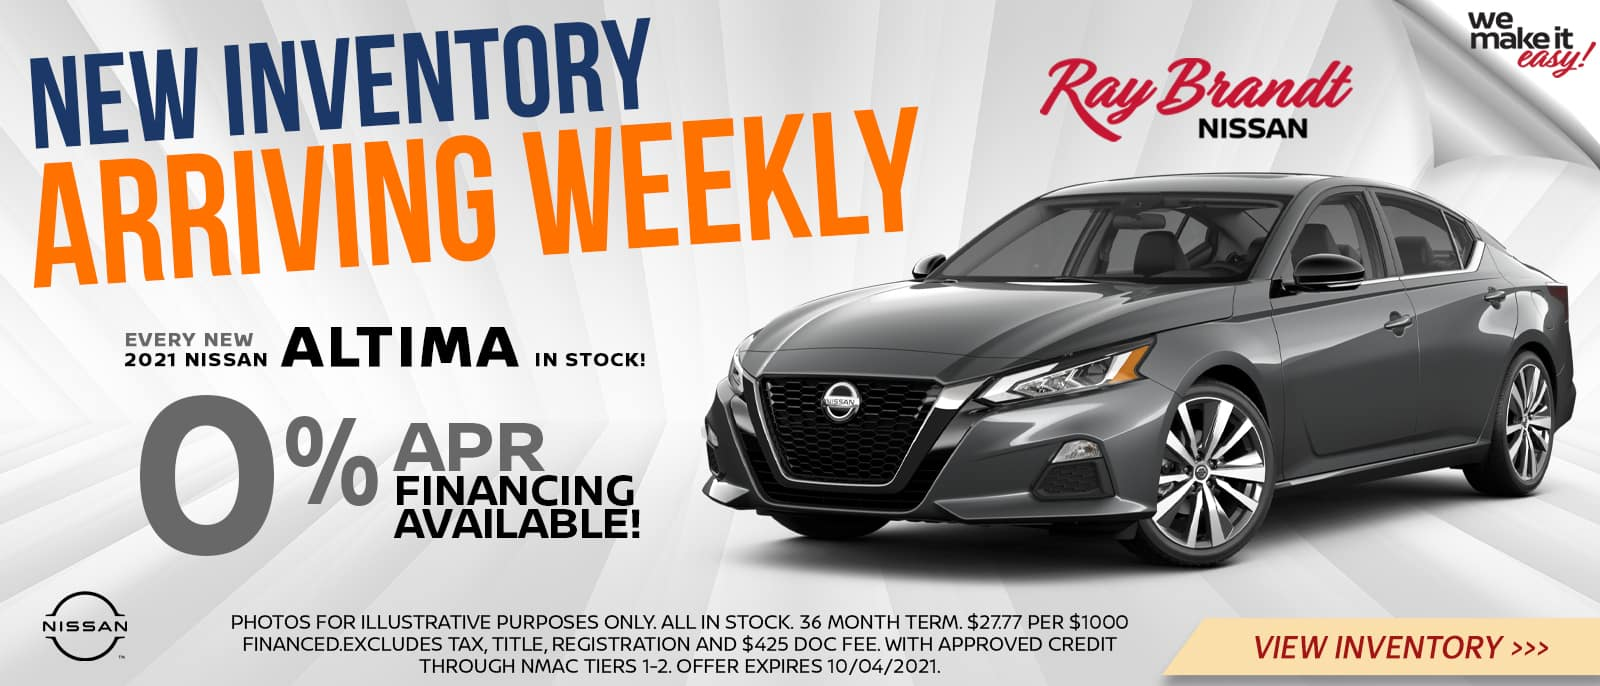 New Inventory Arriving Weekly 0% APR Financing on New Altima